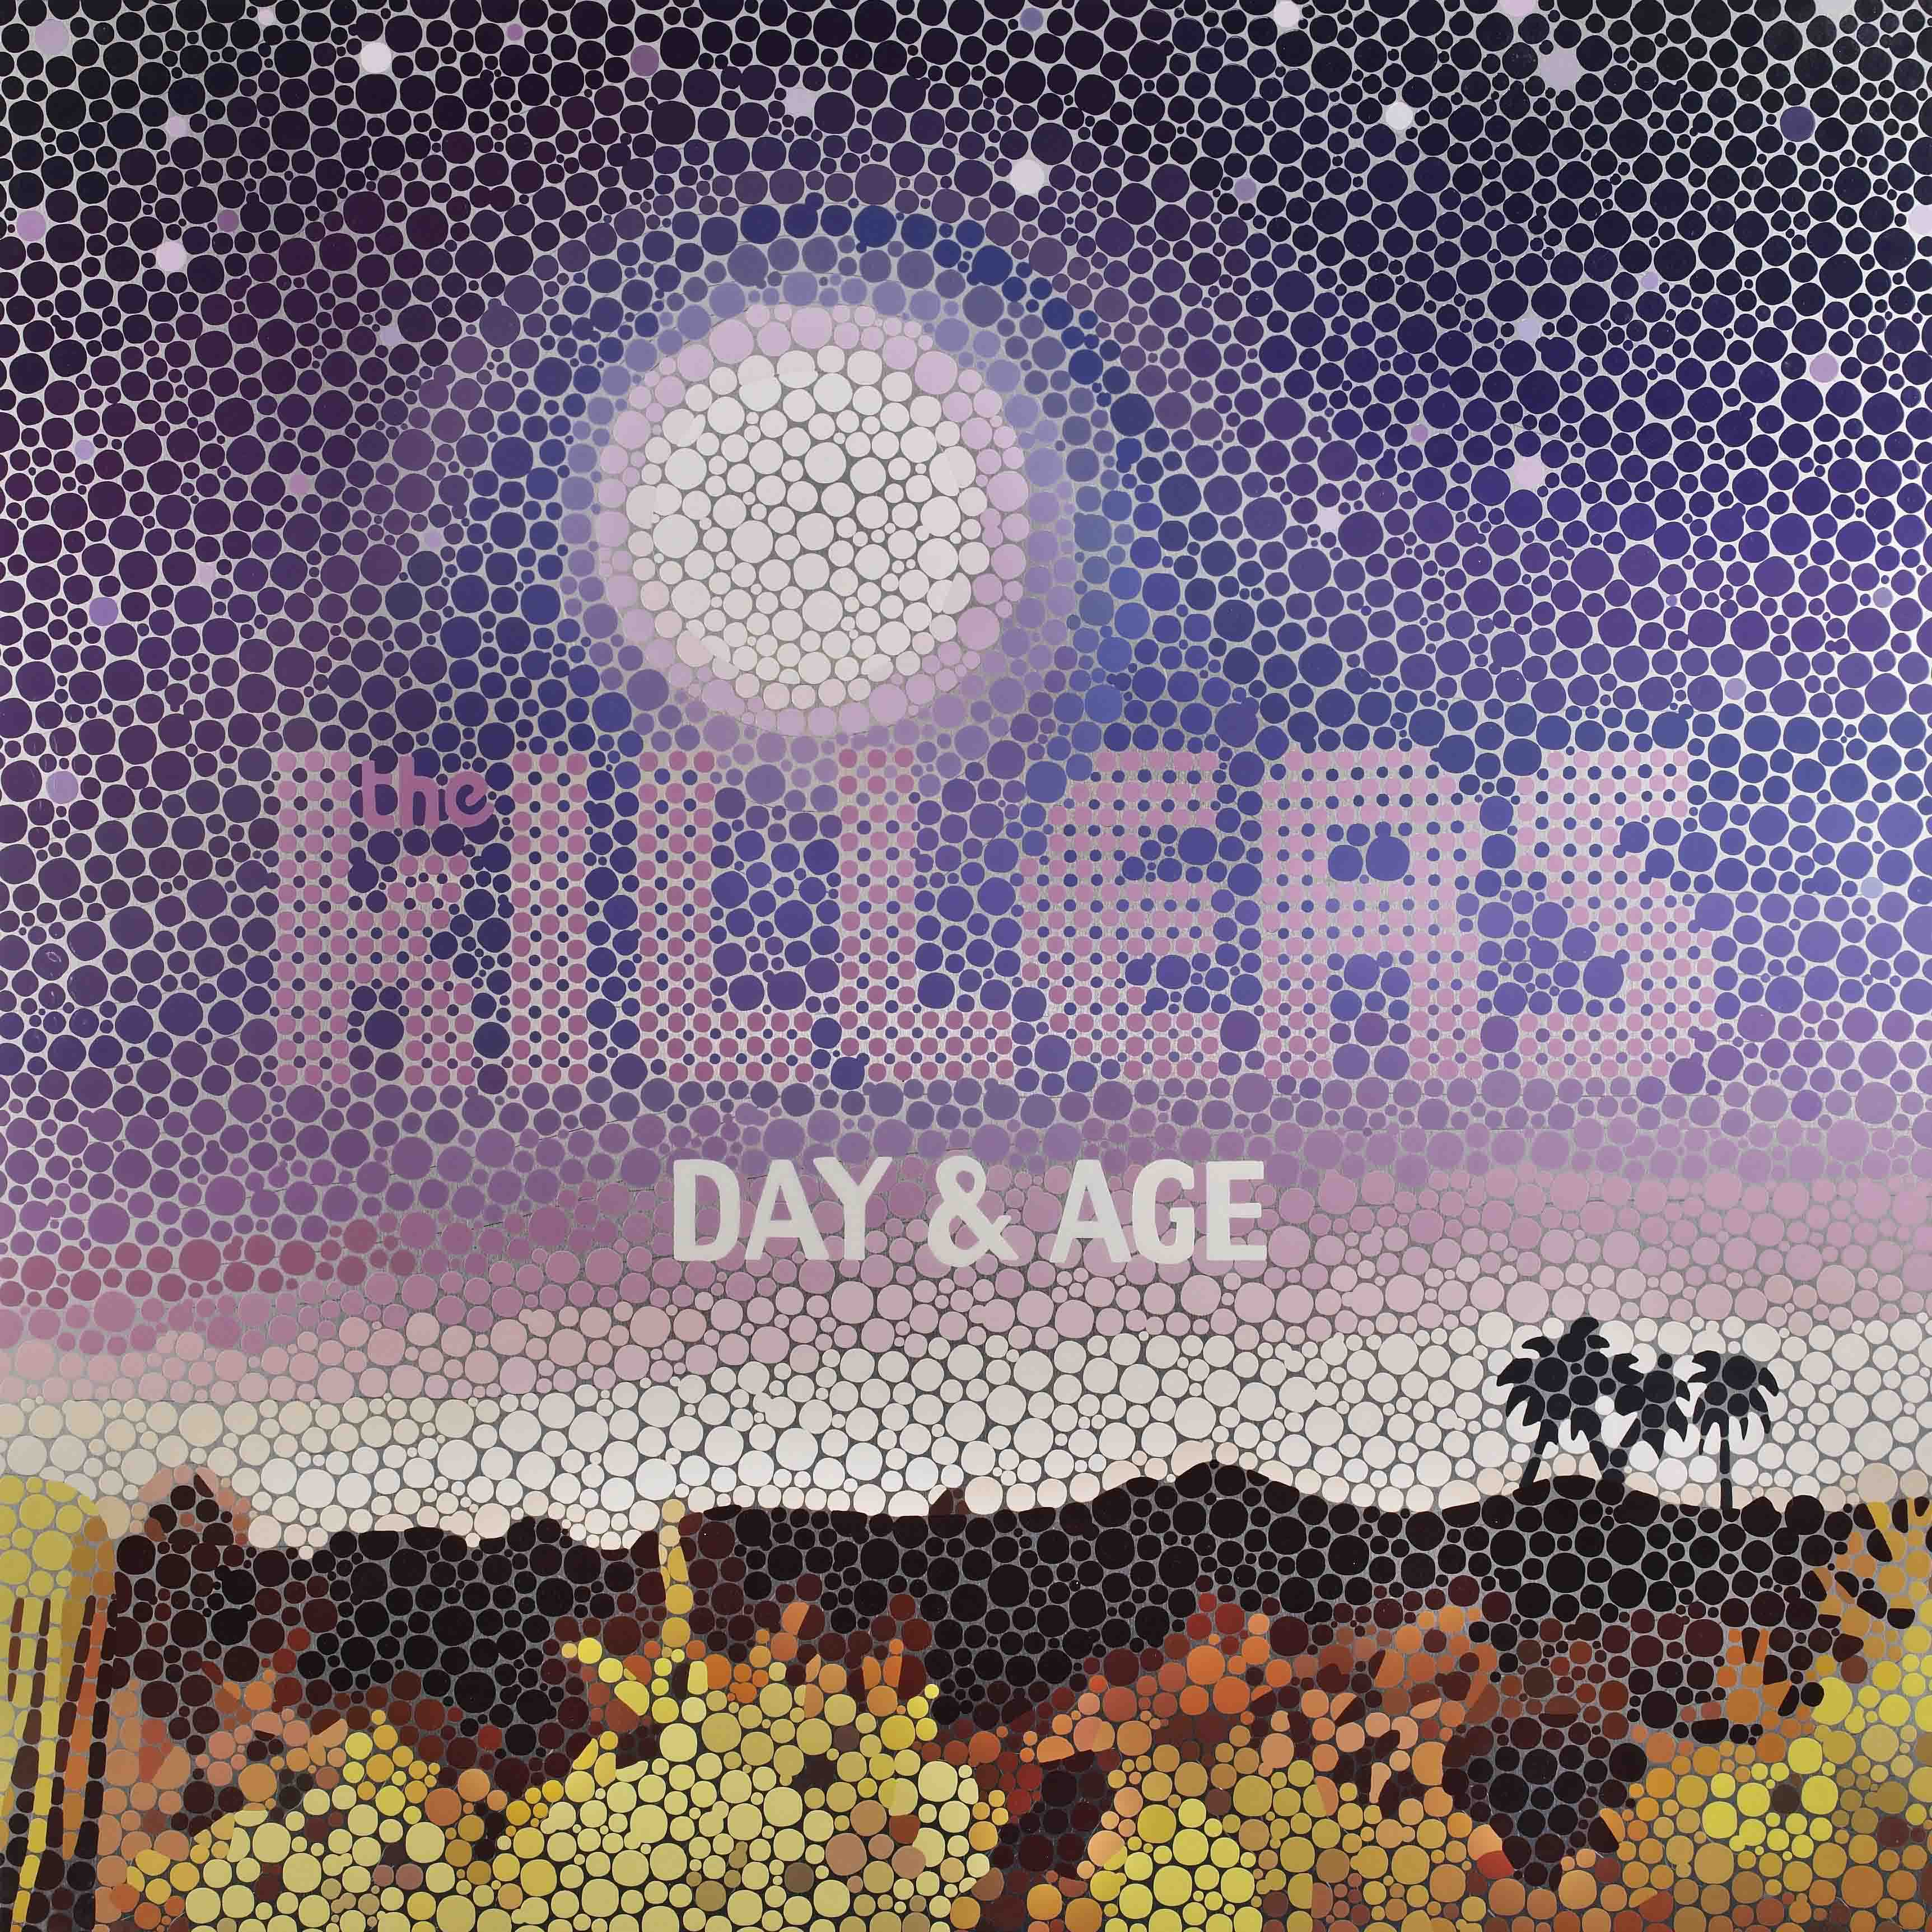 The killers Album covers